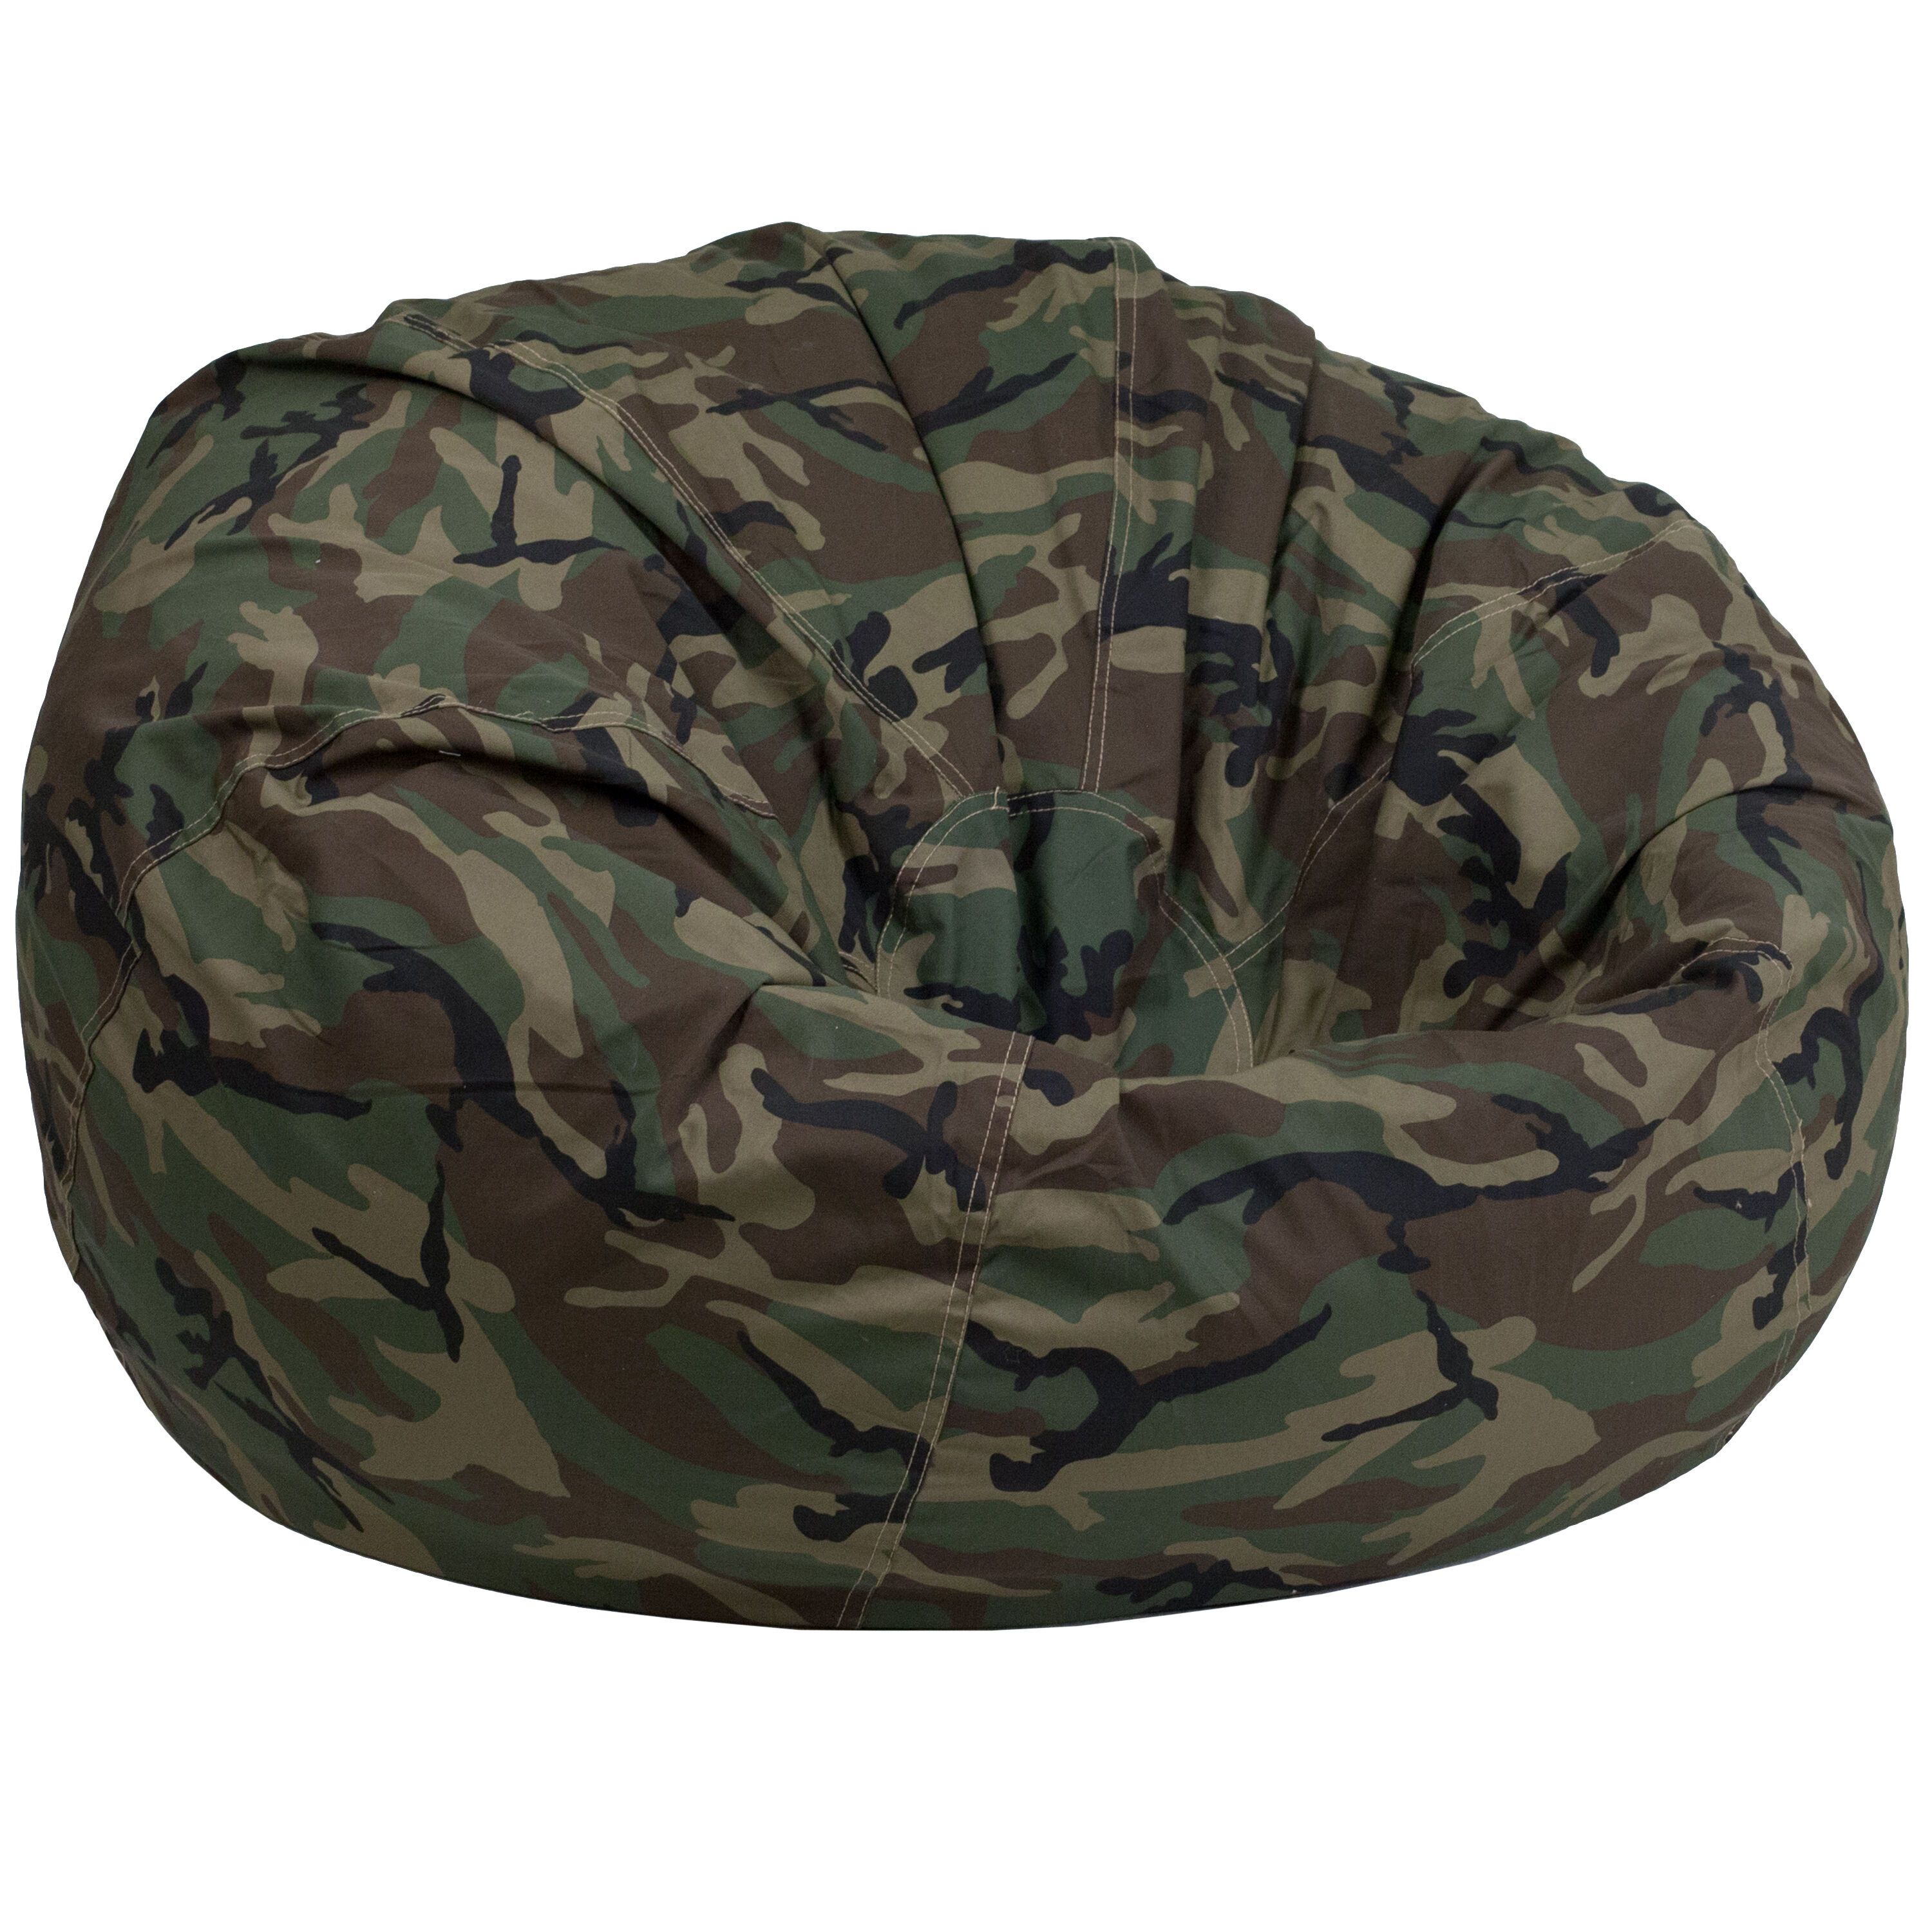 Charmant ... Our Oversized Camouflage Kids Bean Bag Chair Is On Sale Now.